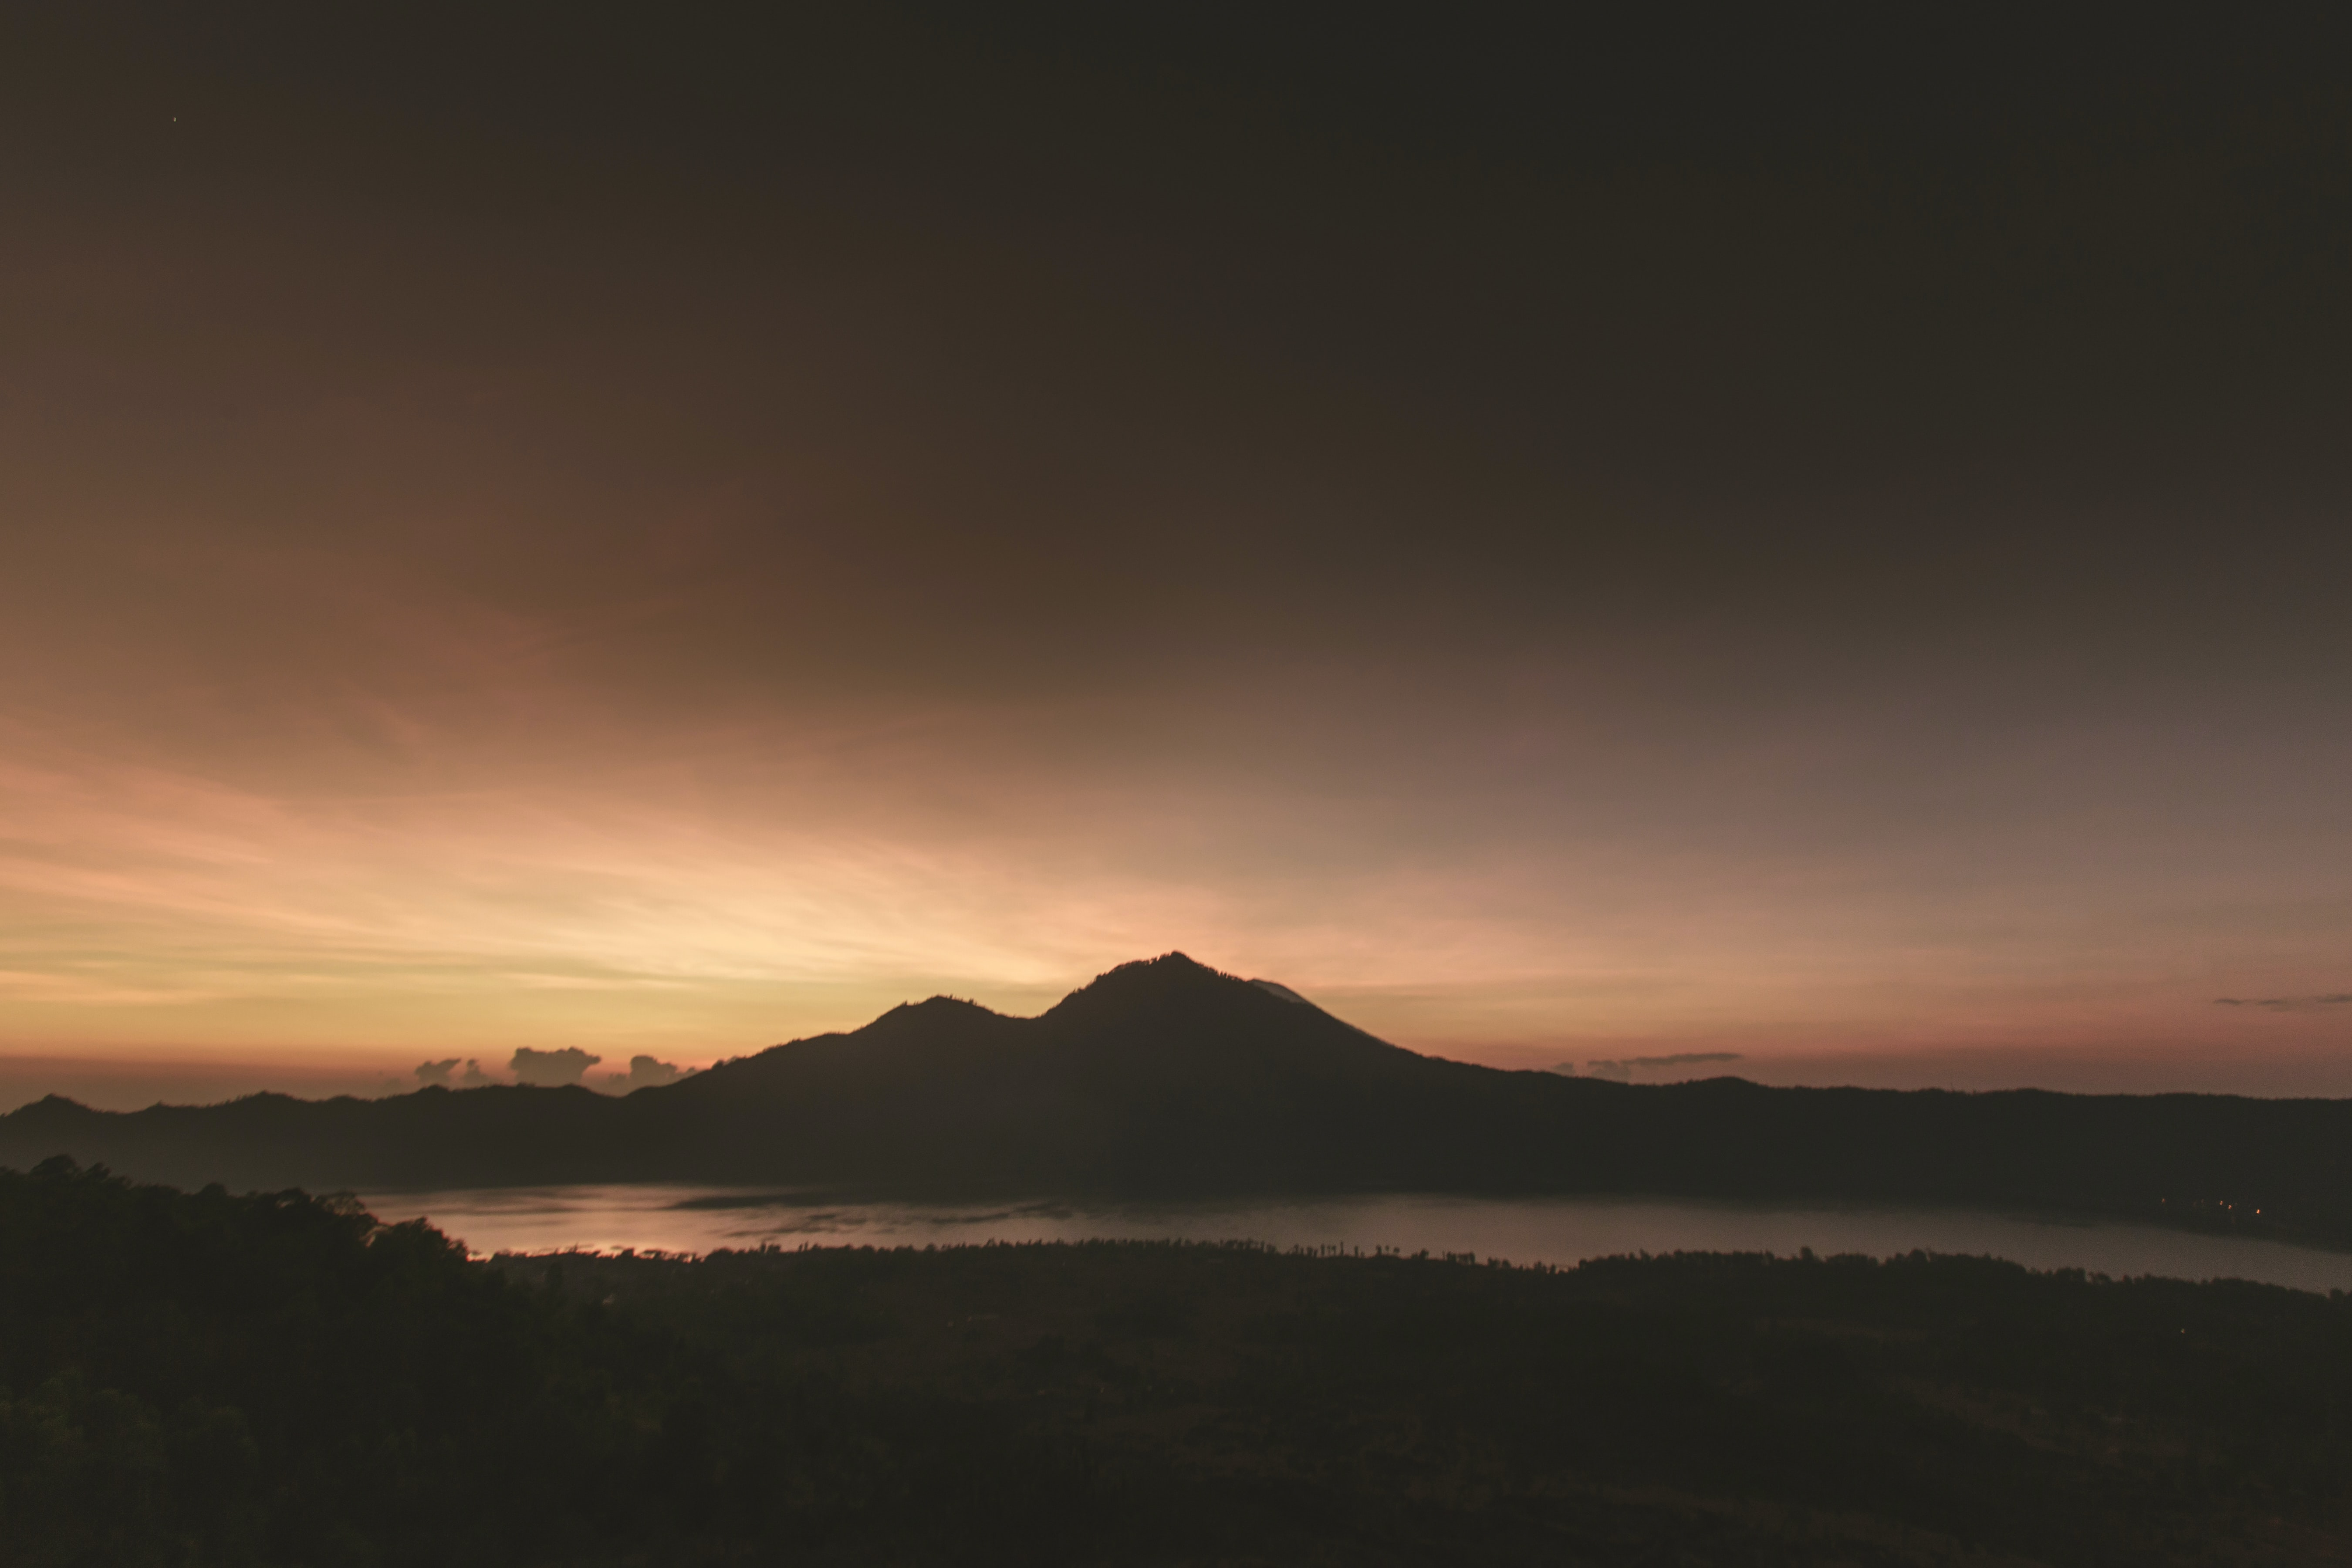 silhouette of mountain near body of water under brown clouds